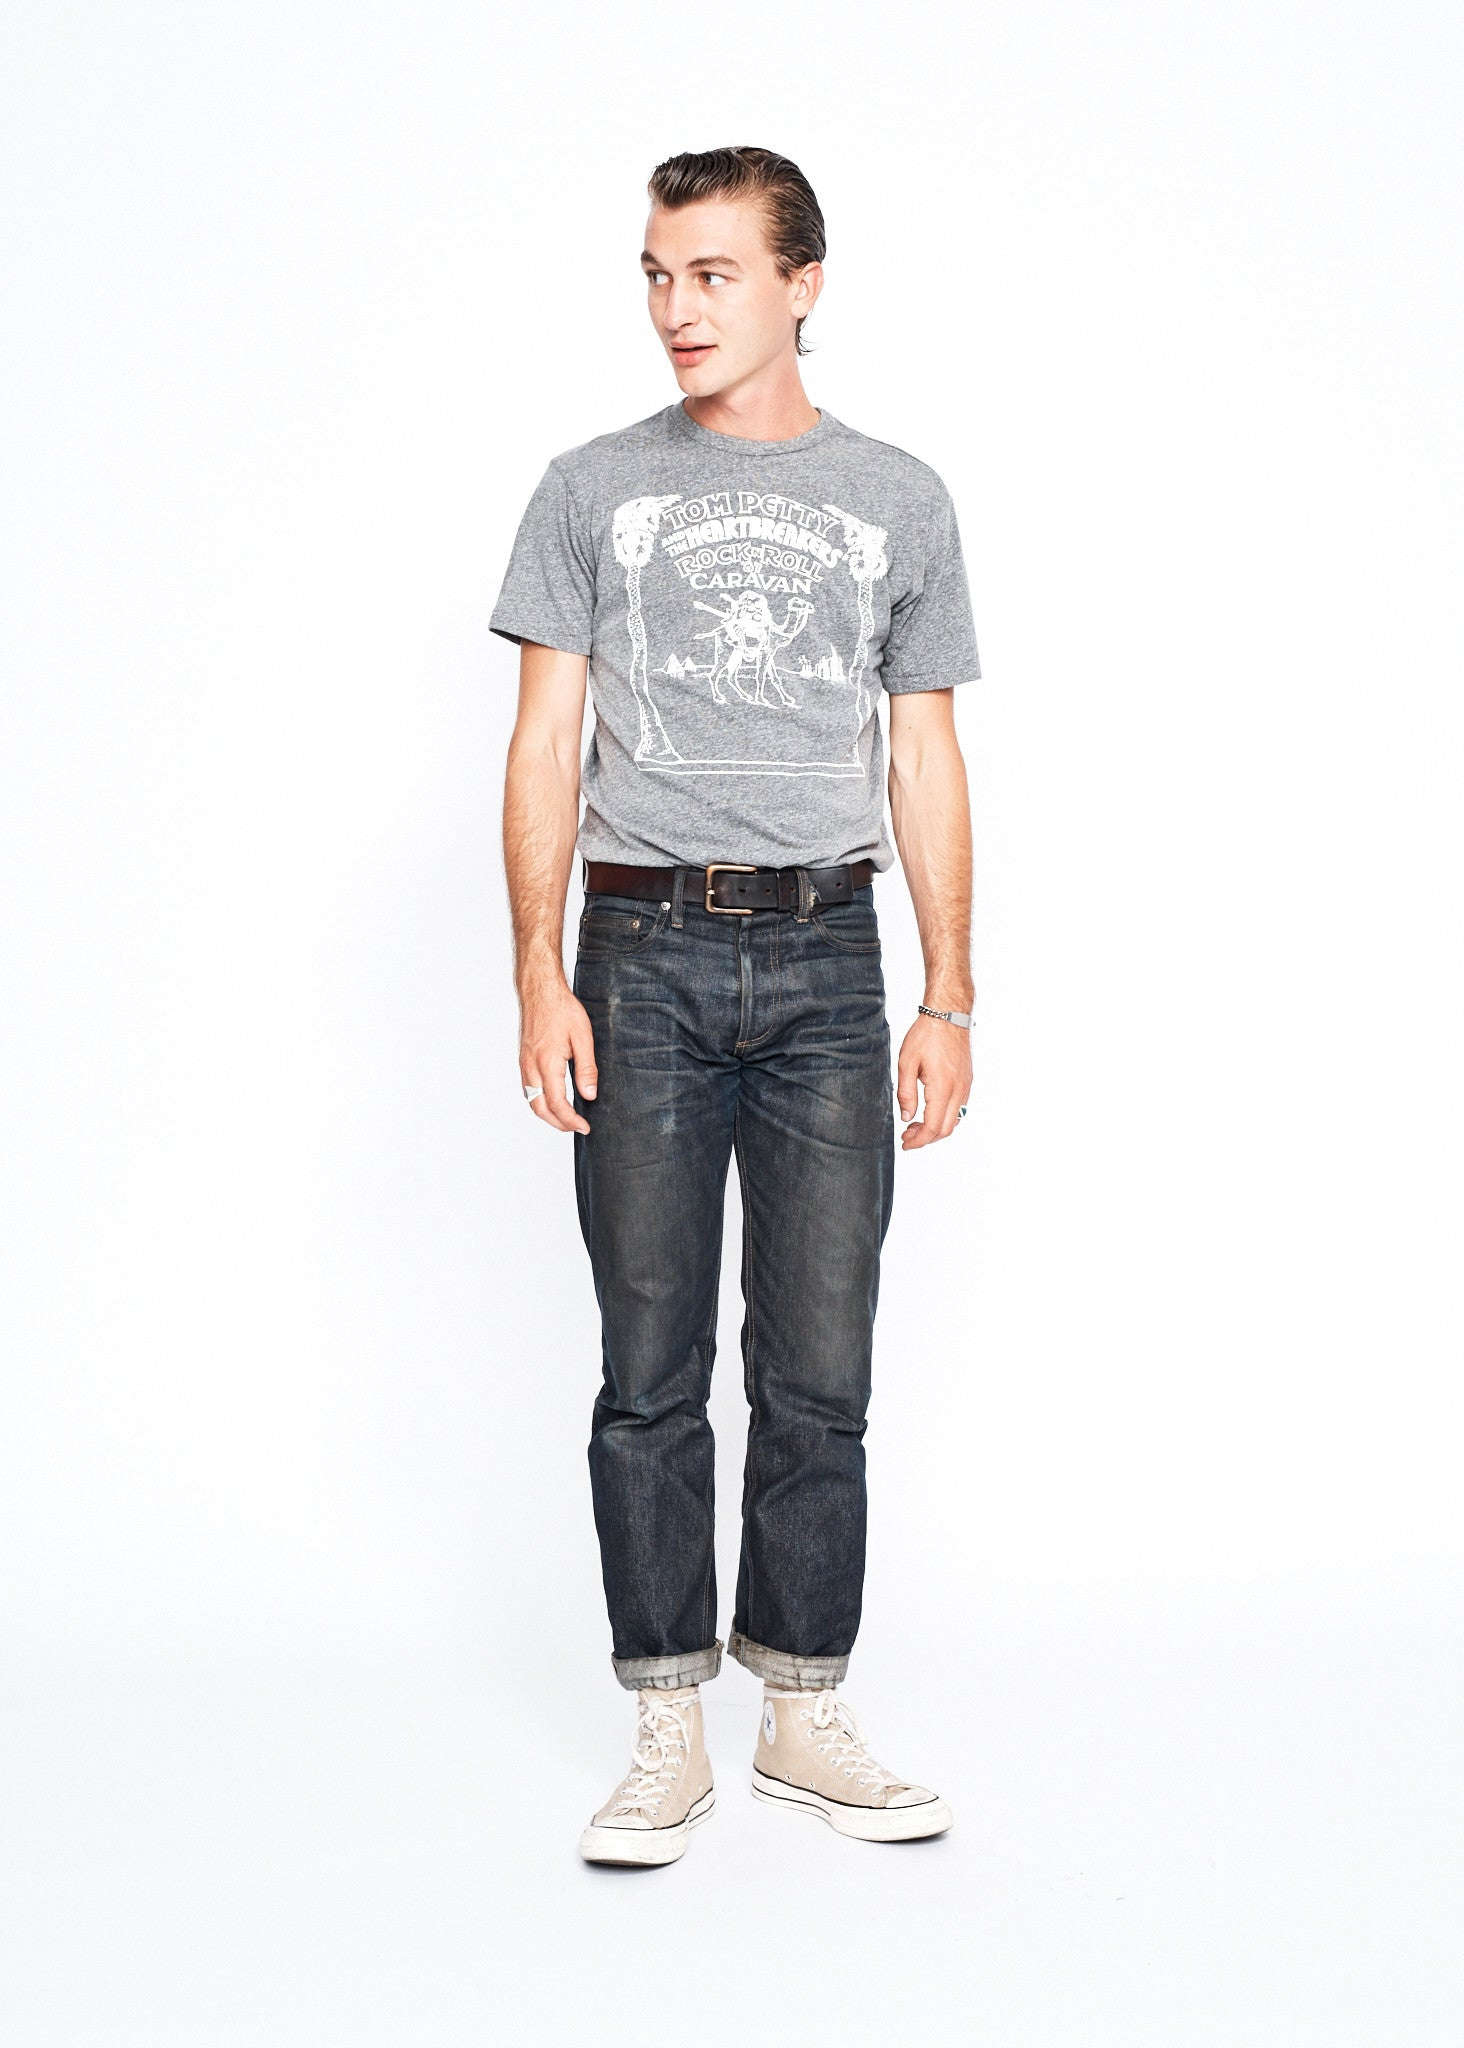 Rock 'n' Roll Caravan Men's Crew - Heather Grey - Men's Tee Shirt - Midnight Rider